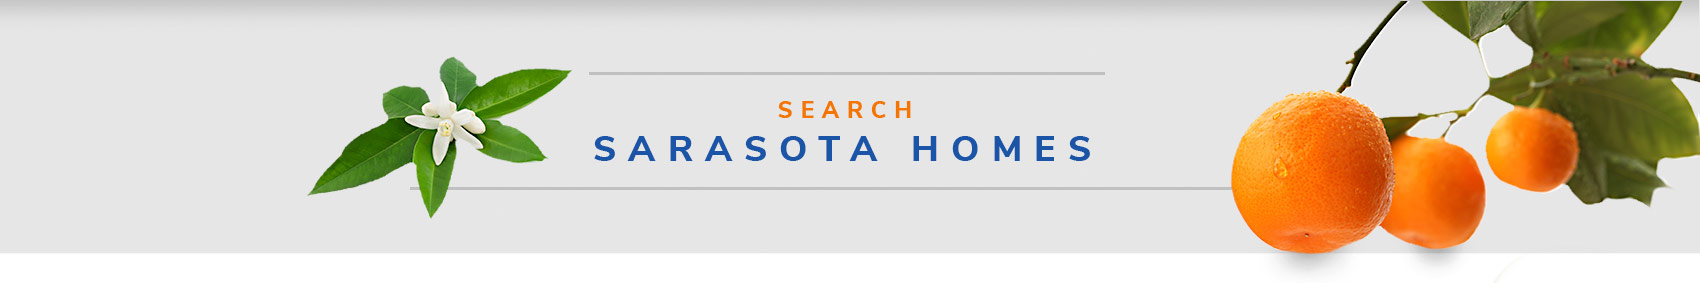 Search Sarasota Homes